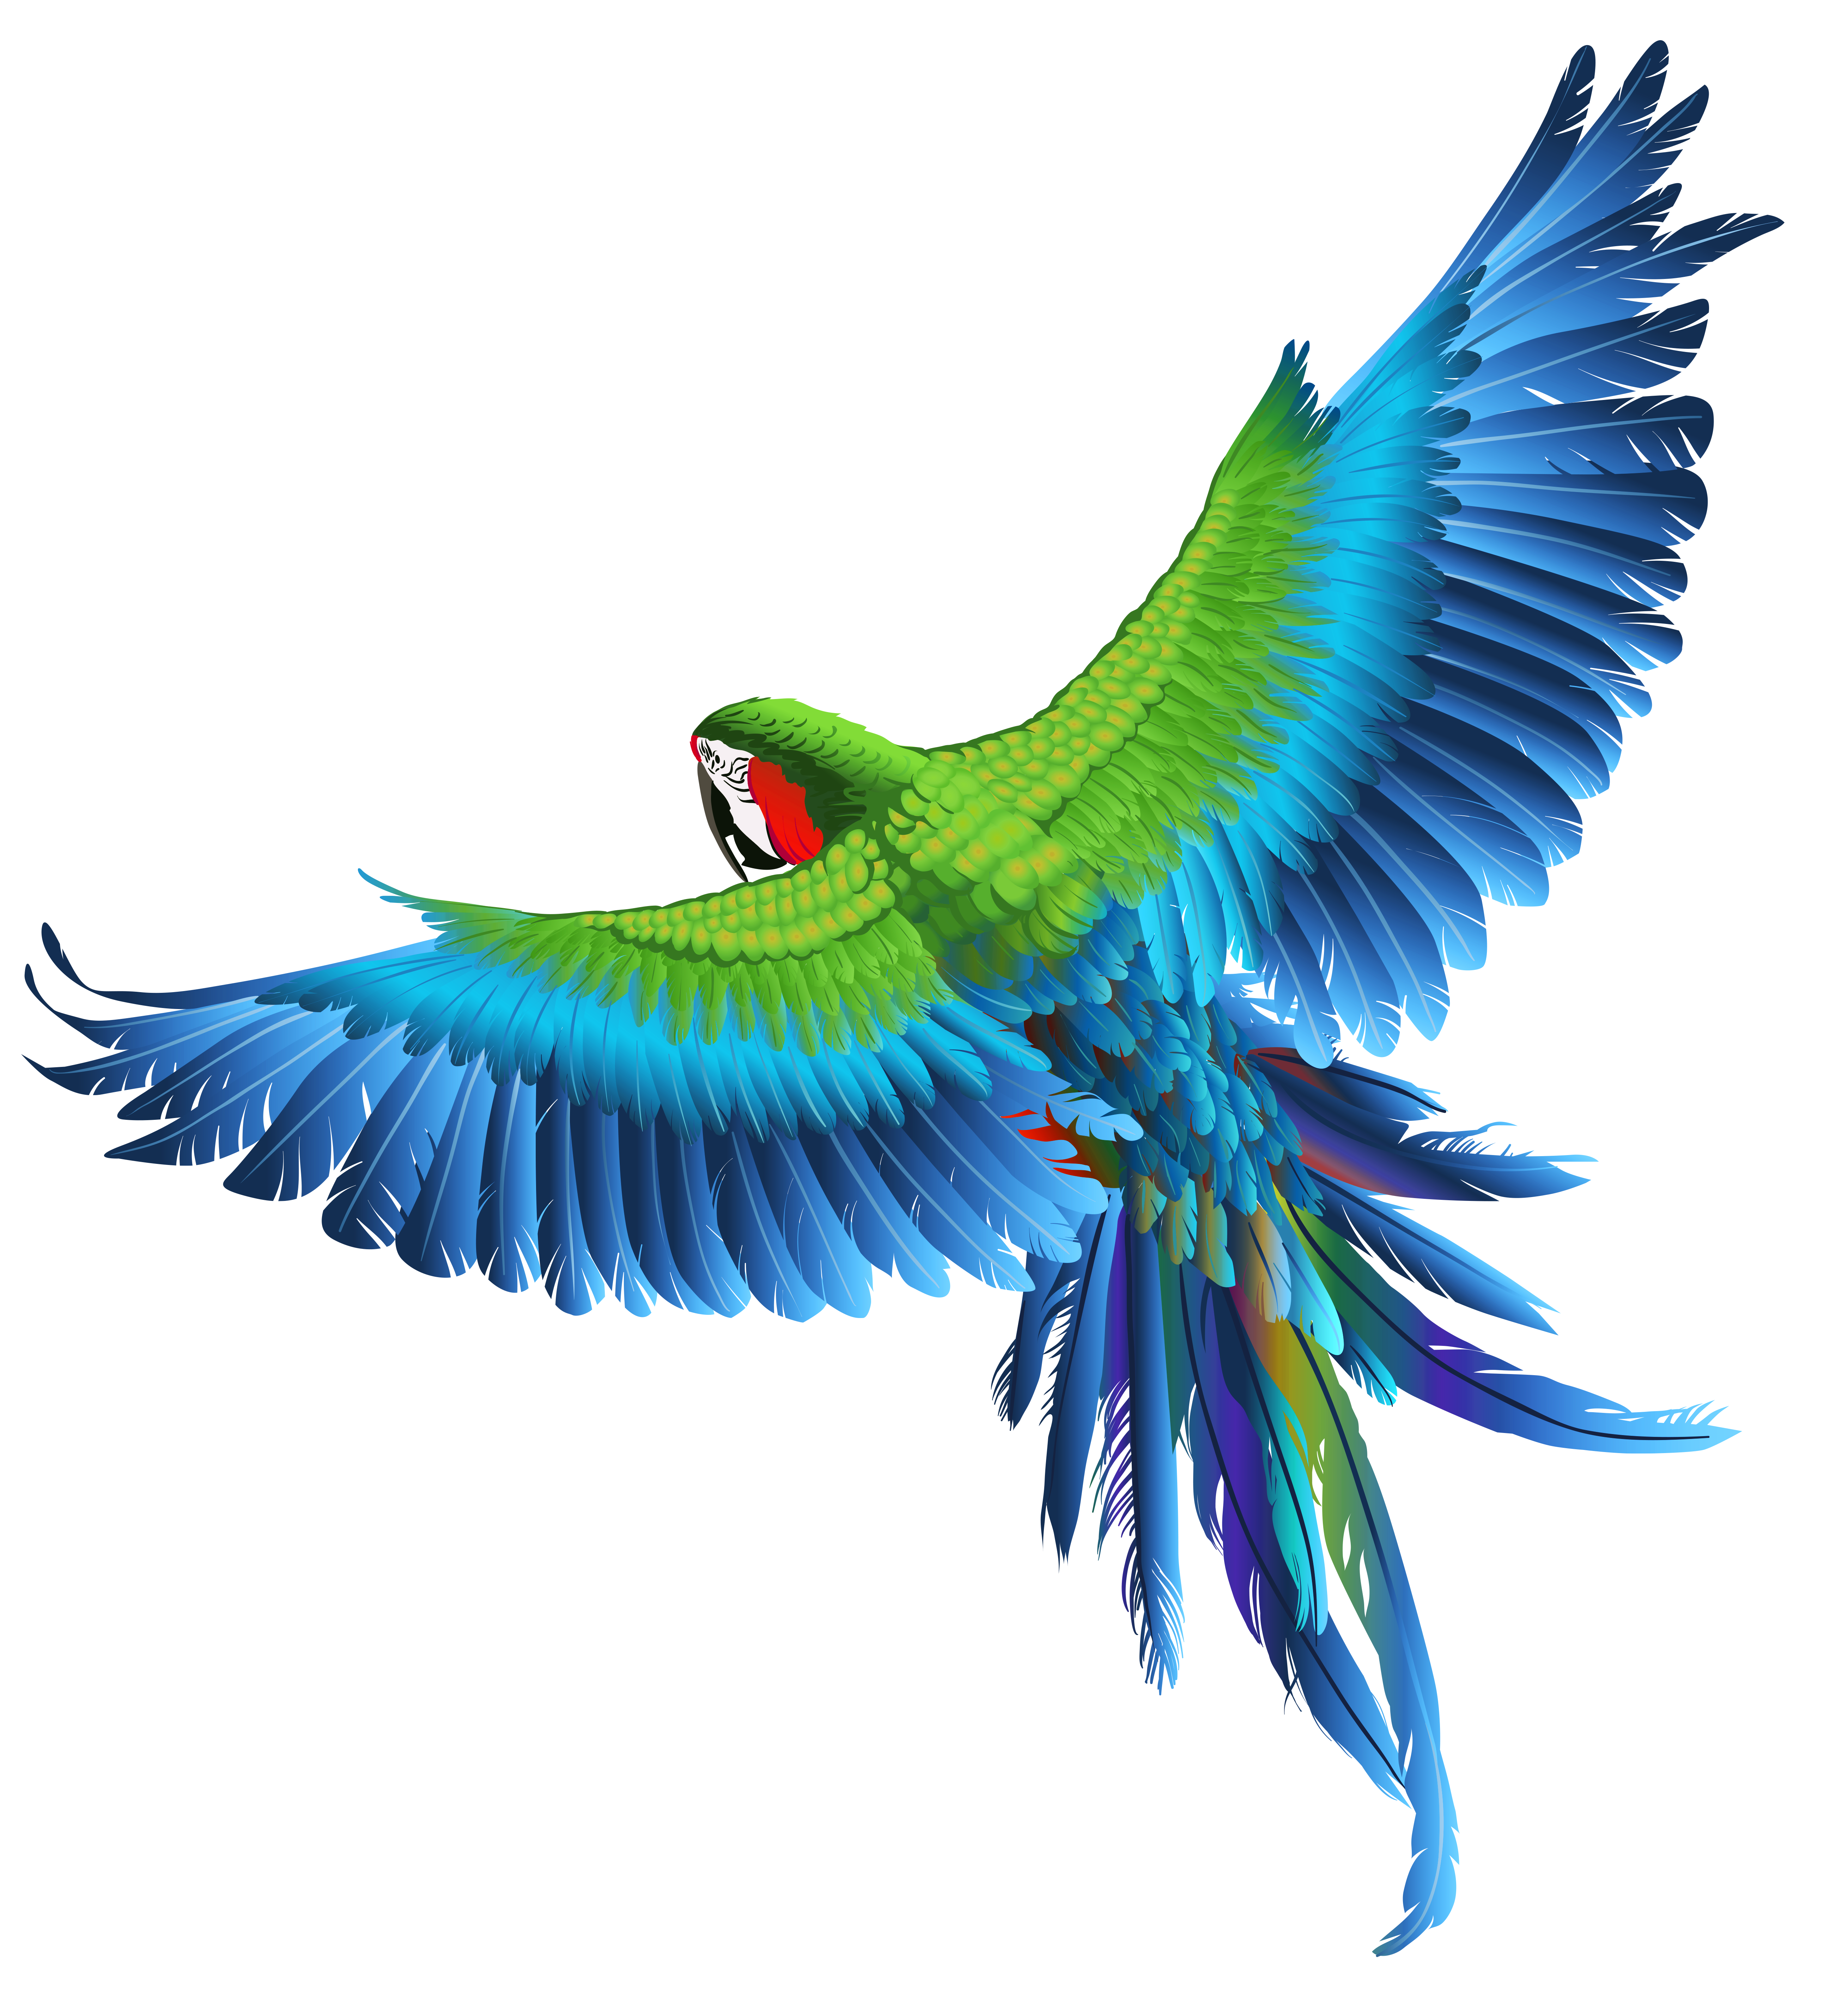 Parrot clipart bird's. Transparent picture gallery yopriceville